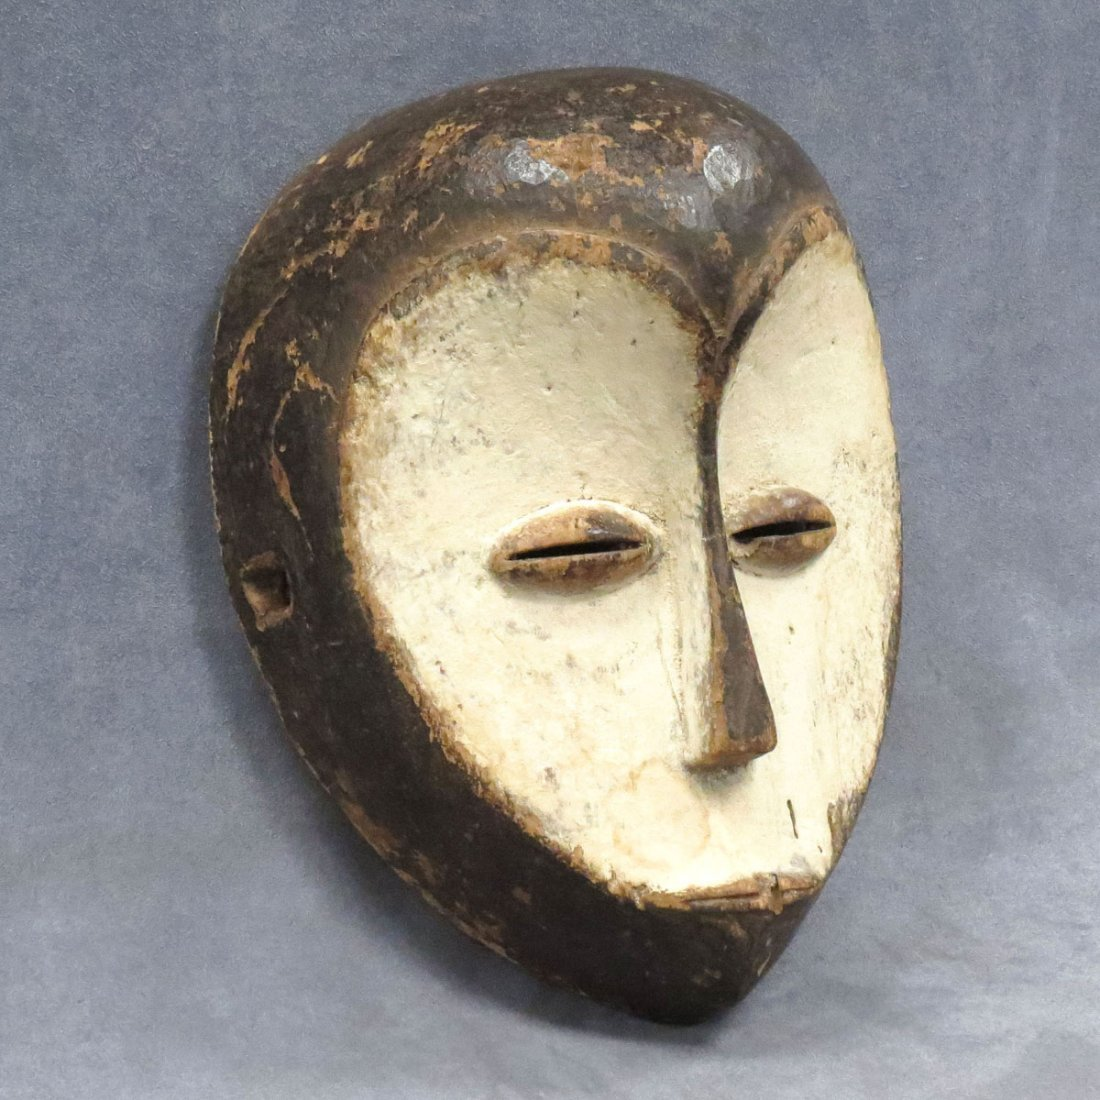 BAKWELE, D.R.C. CARVED AND PAINTED MASK